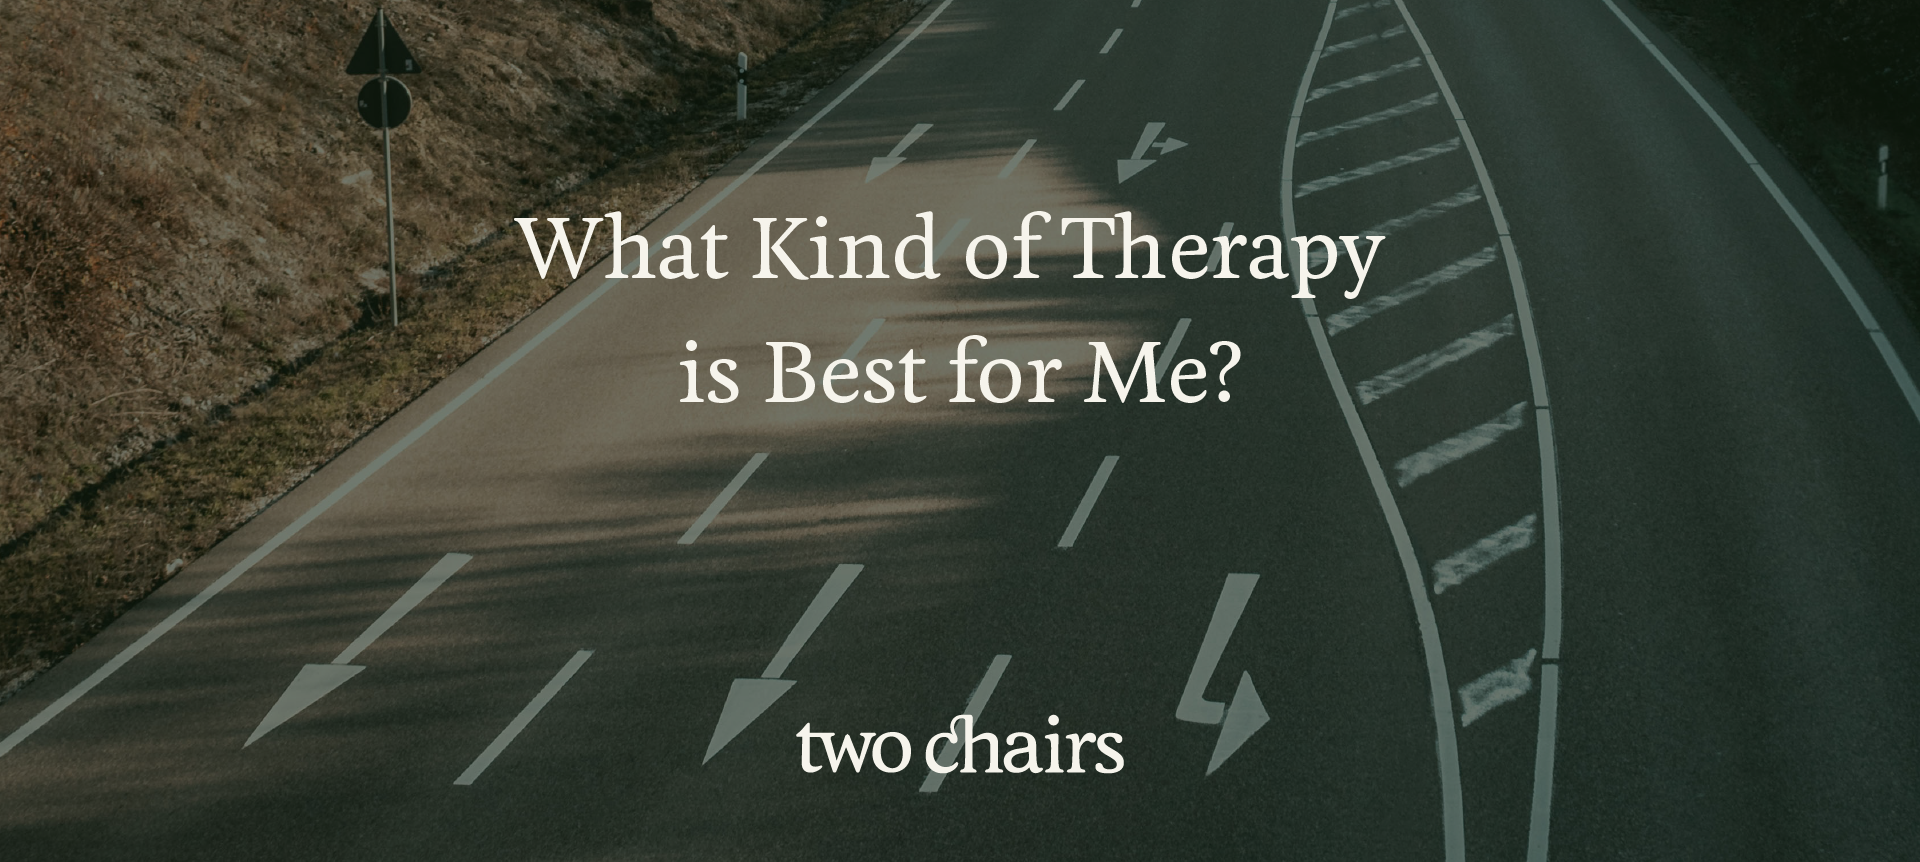 What Kind of Therapy is Best for Me?